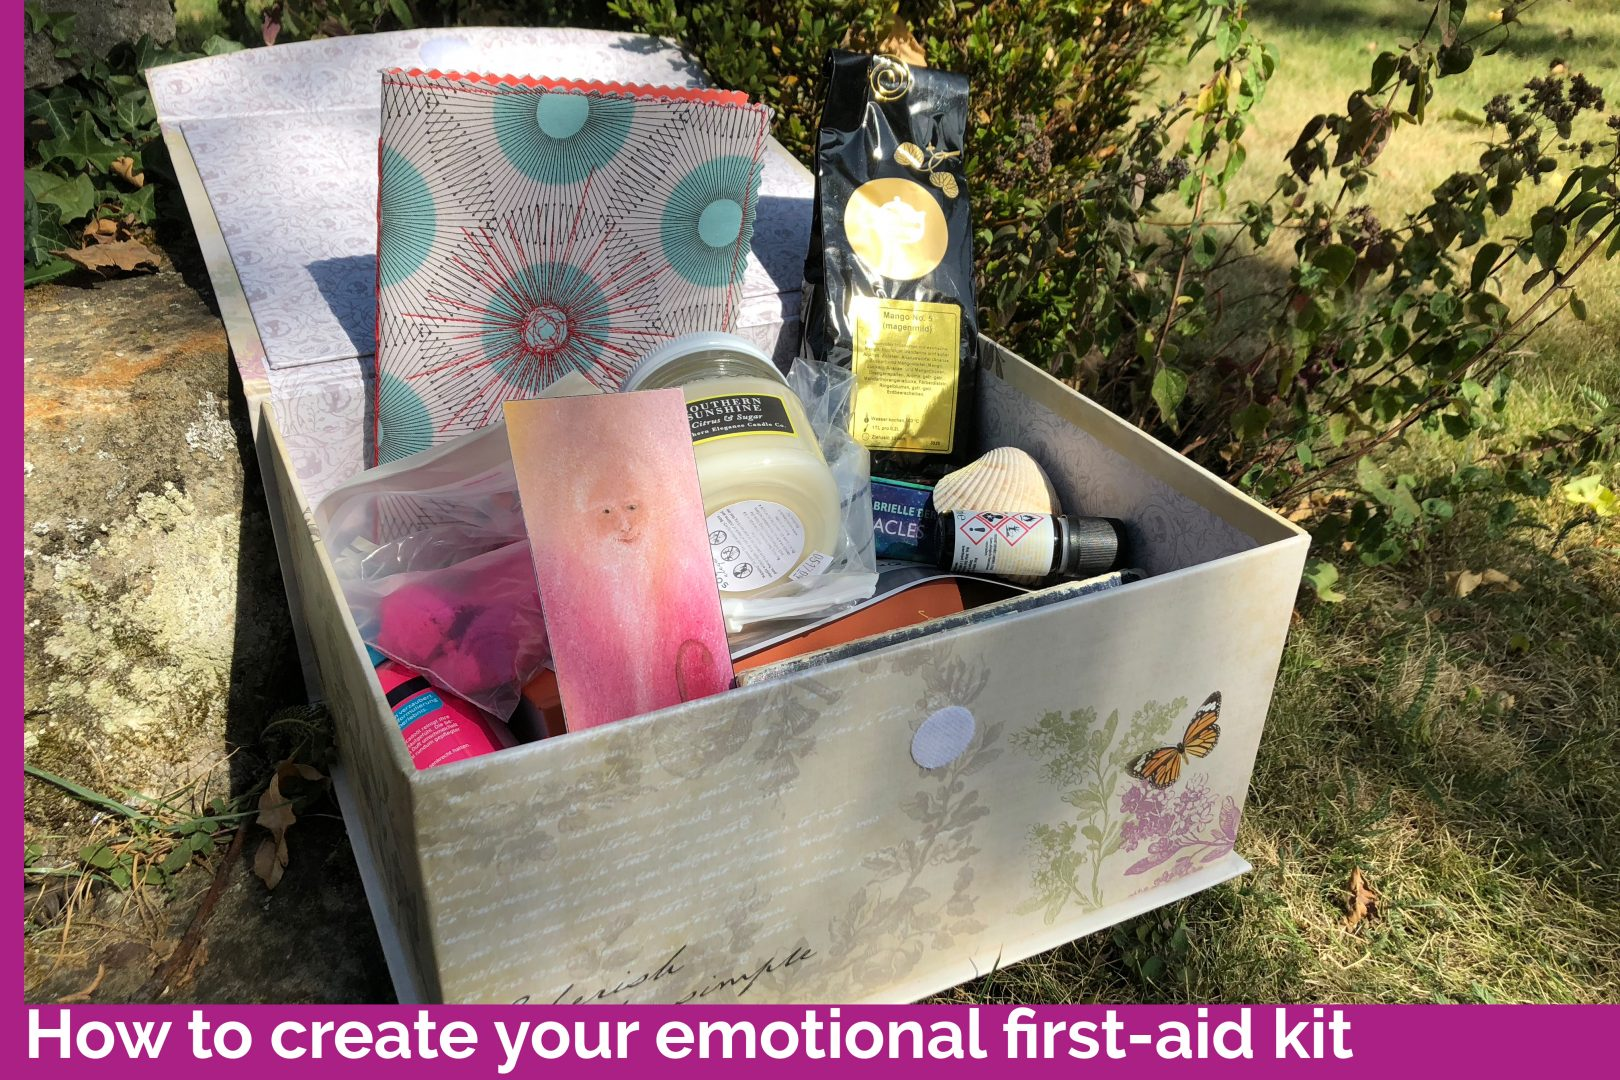 How to create your emotional first-aid kit